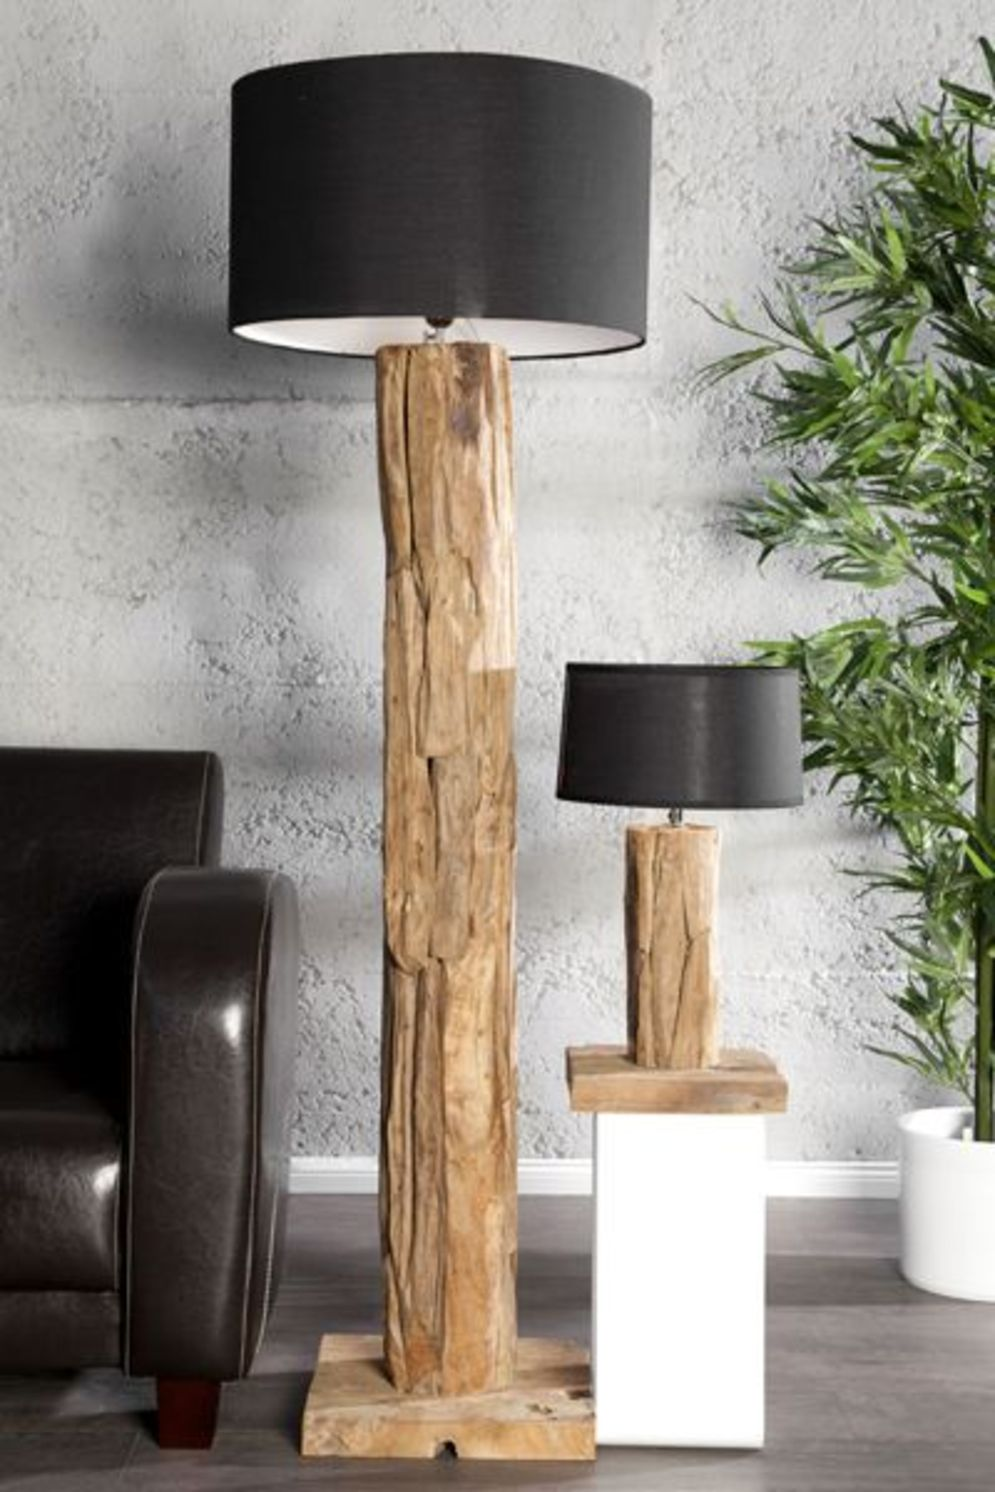 Awesome driftwood lamp stands giving authentic decoration in natural art style Image 9